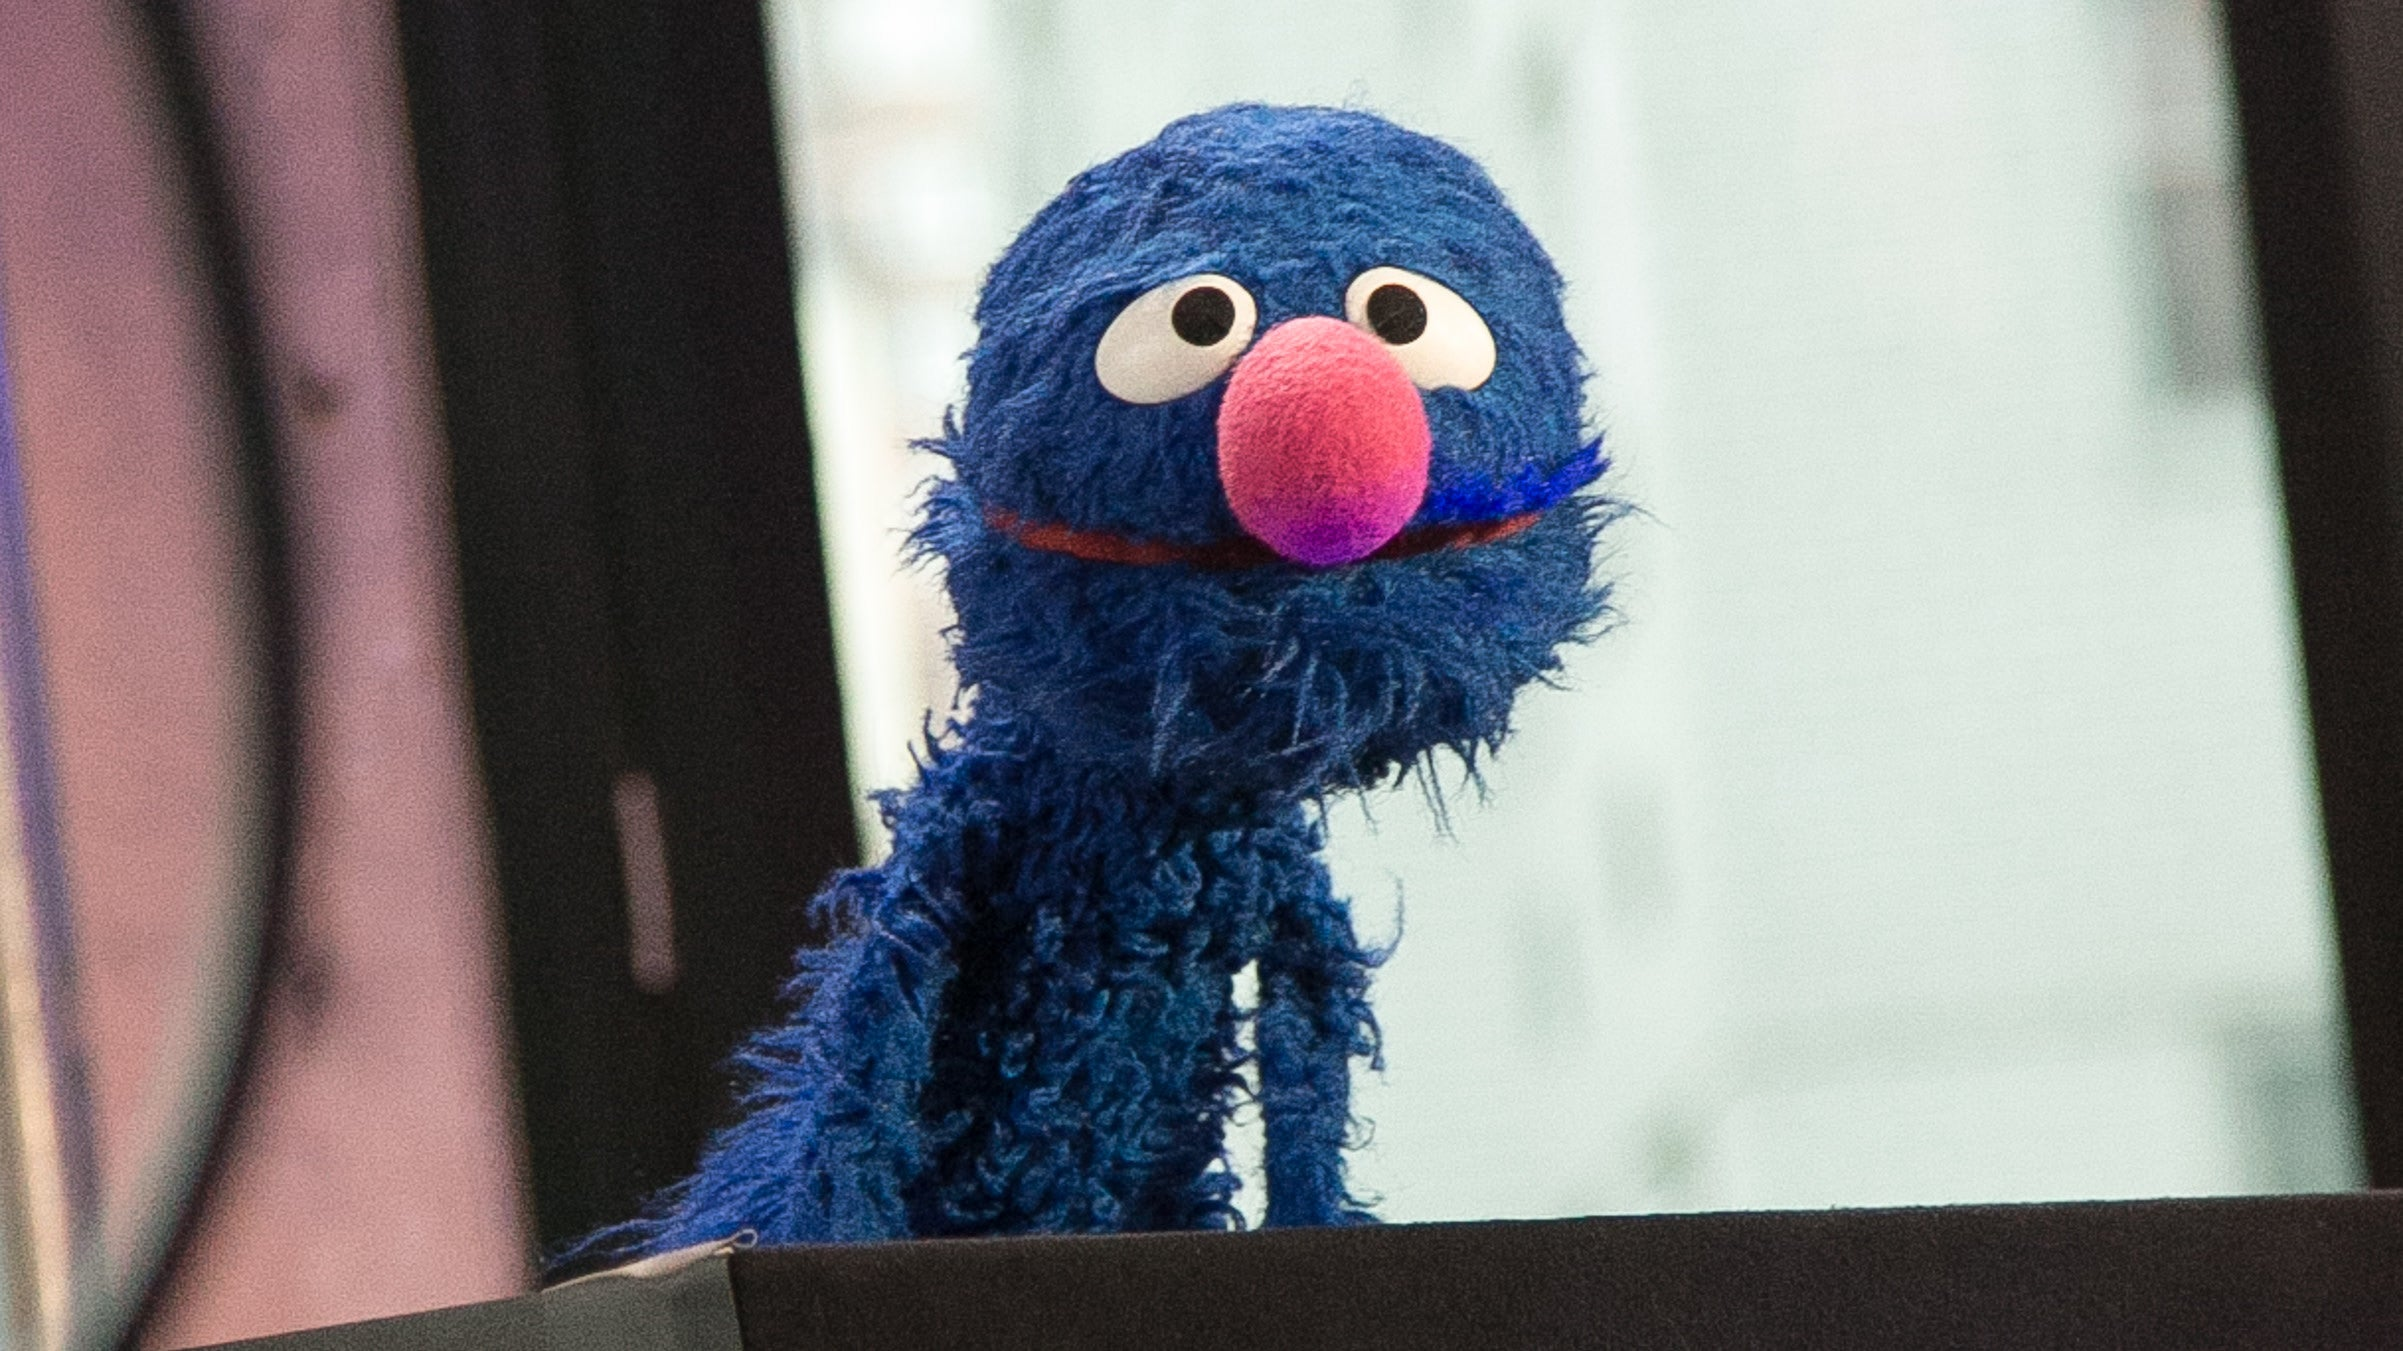 Play This NPR Podcast Interview With Grover For Your Kids